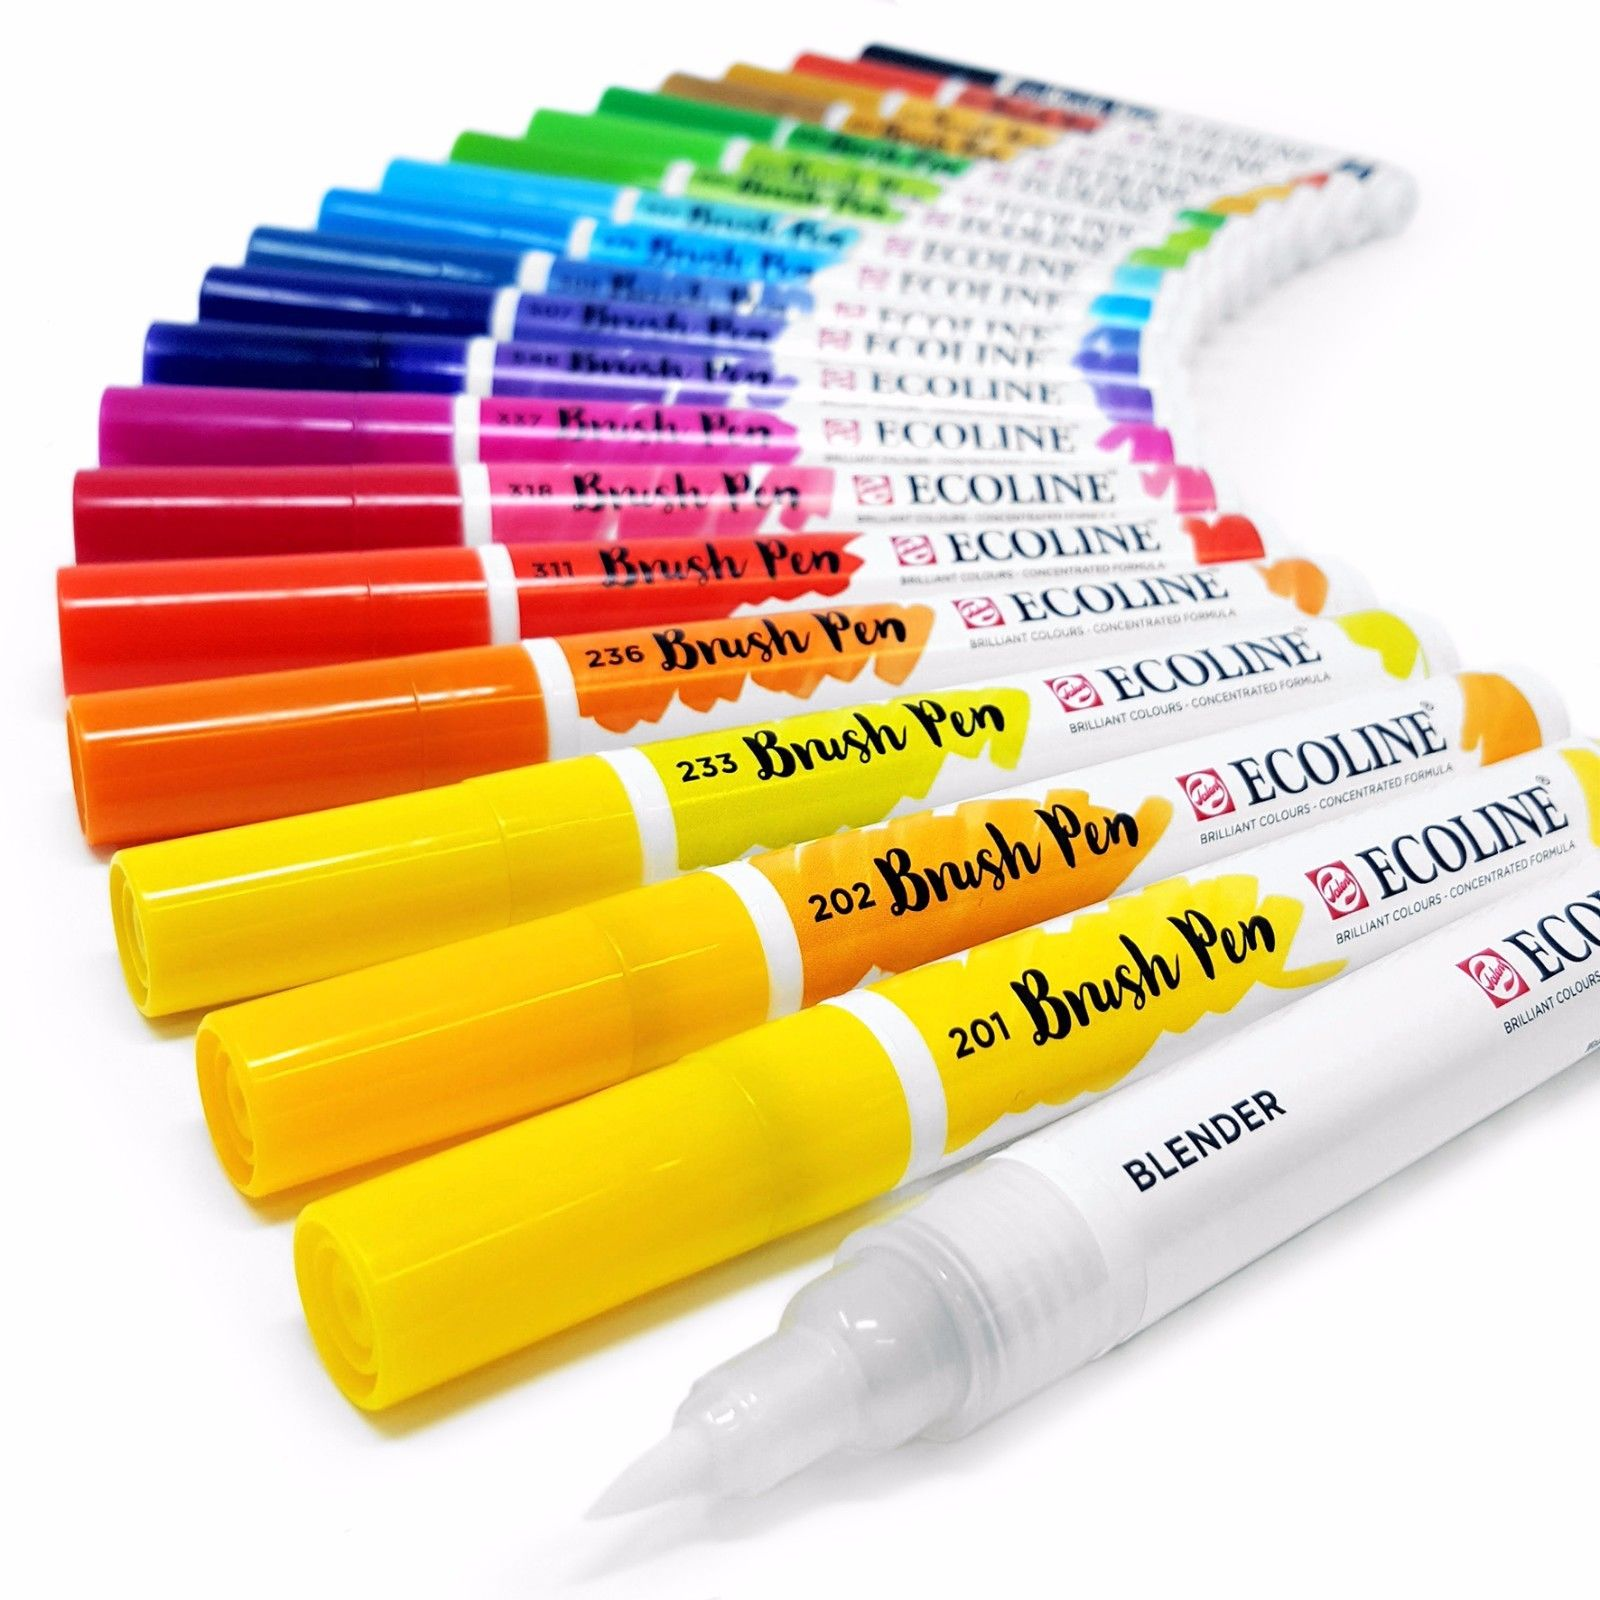 Featured Here Are Color Swatches For Ecoline S Liquid Watercolor